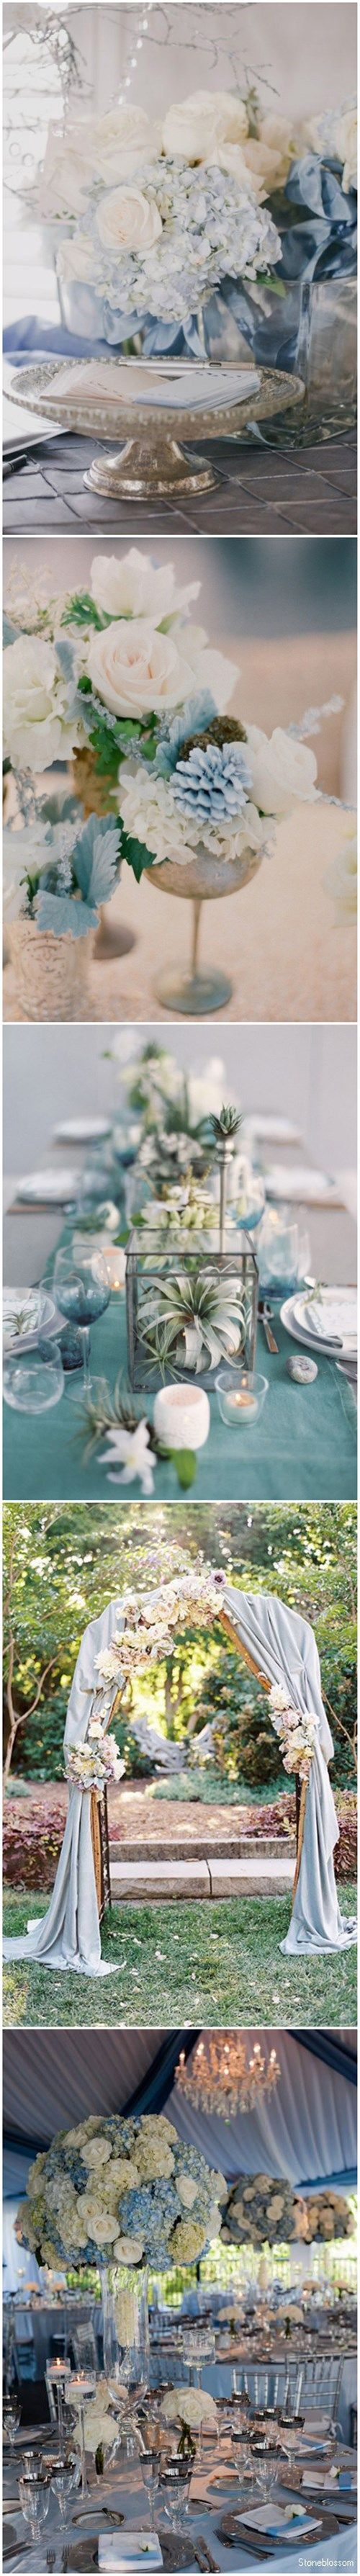 Light blue wedding decoration ideas   best Winter Wedding Ideas  images on Pinterest  Winter